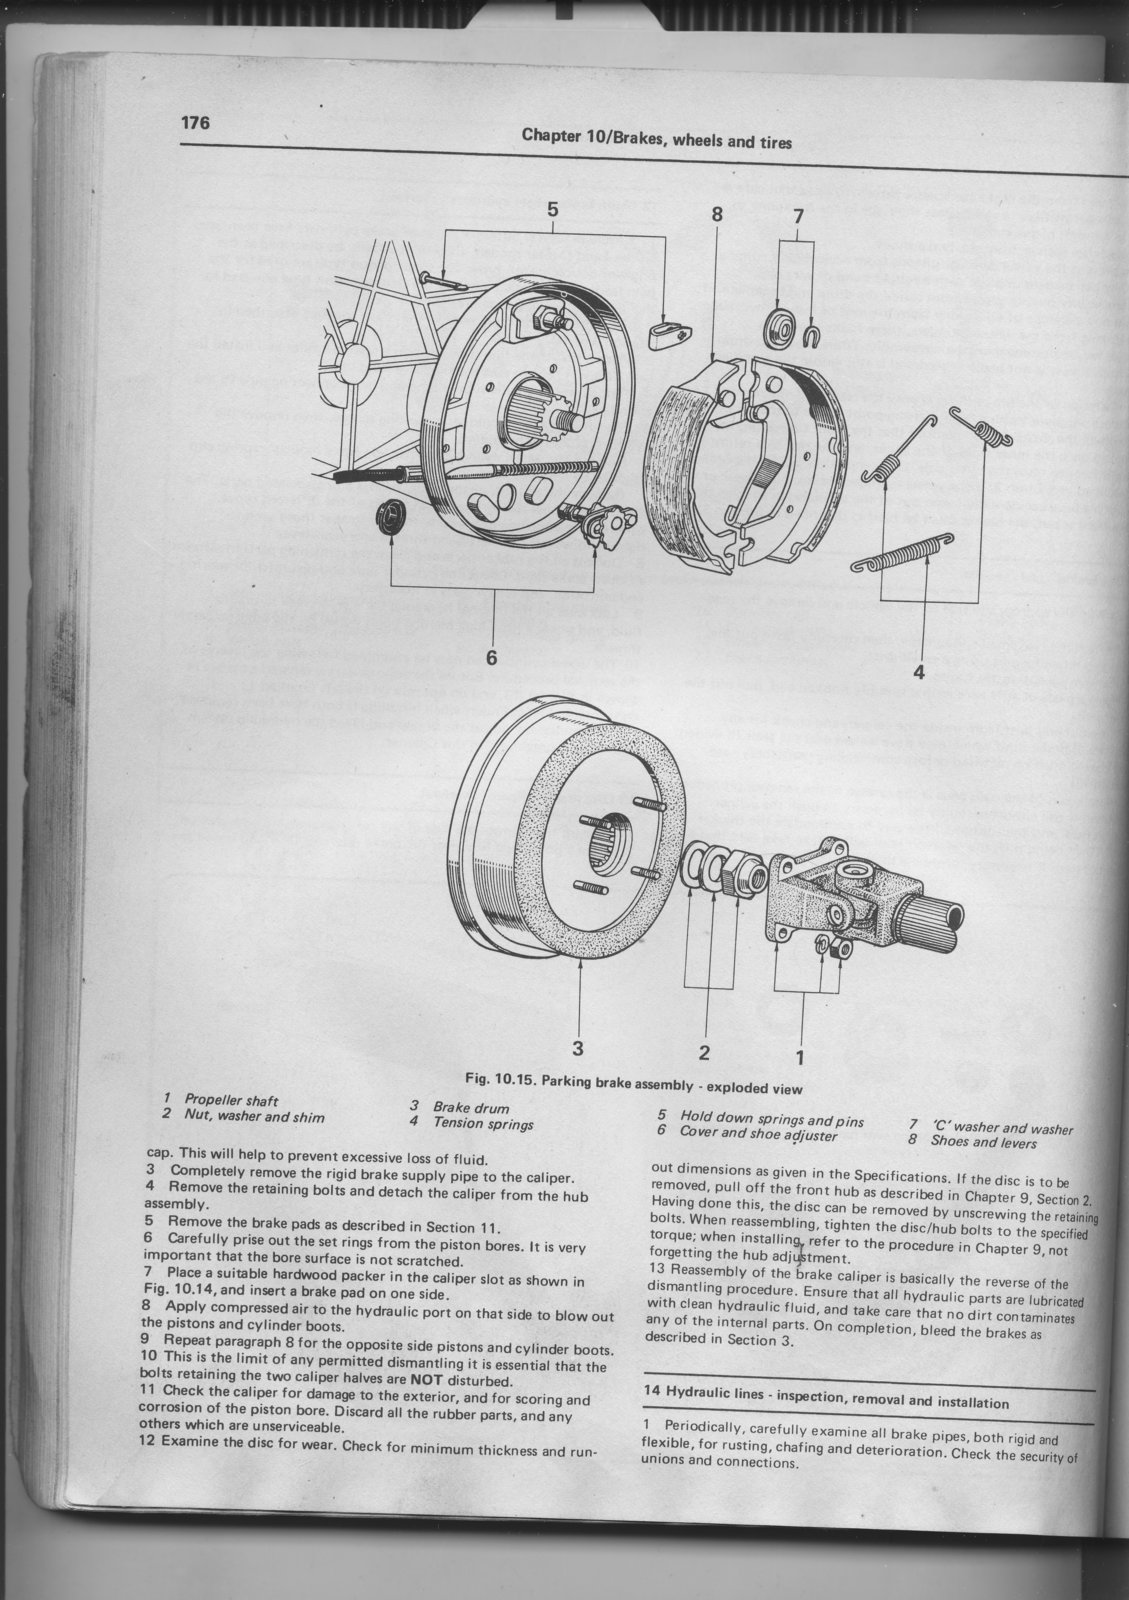 Back In A Land Cruiser 1978 Hj45 Build And Adventures Page 2 Fj55 Wiring Diagram Transmission Hd Brake 02